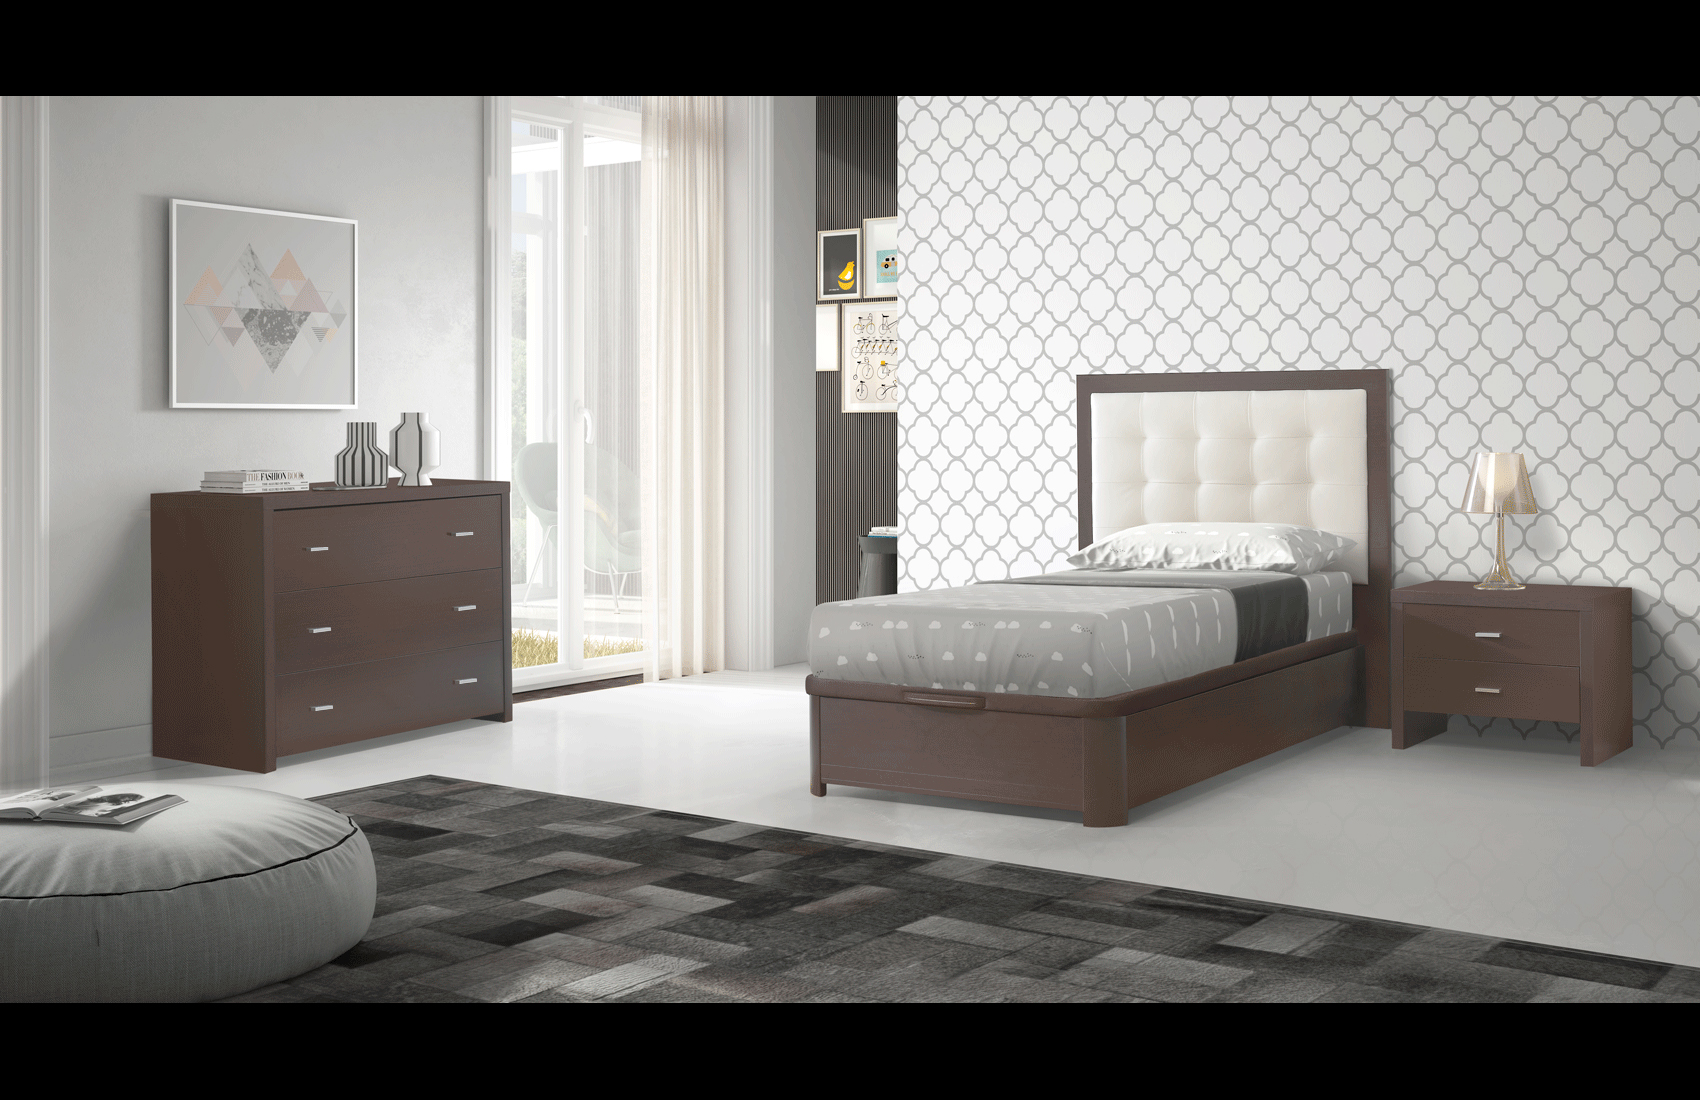 Bedroom Furniture Full Size Kids Bedrooms Regina Storage TS, FS Wenge Bedroom